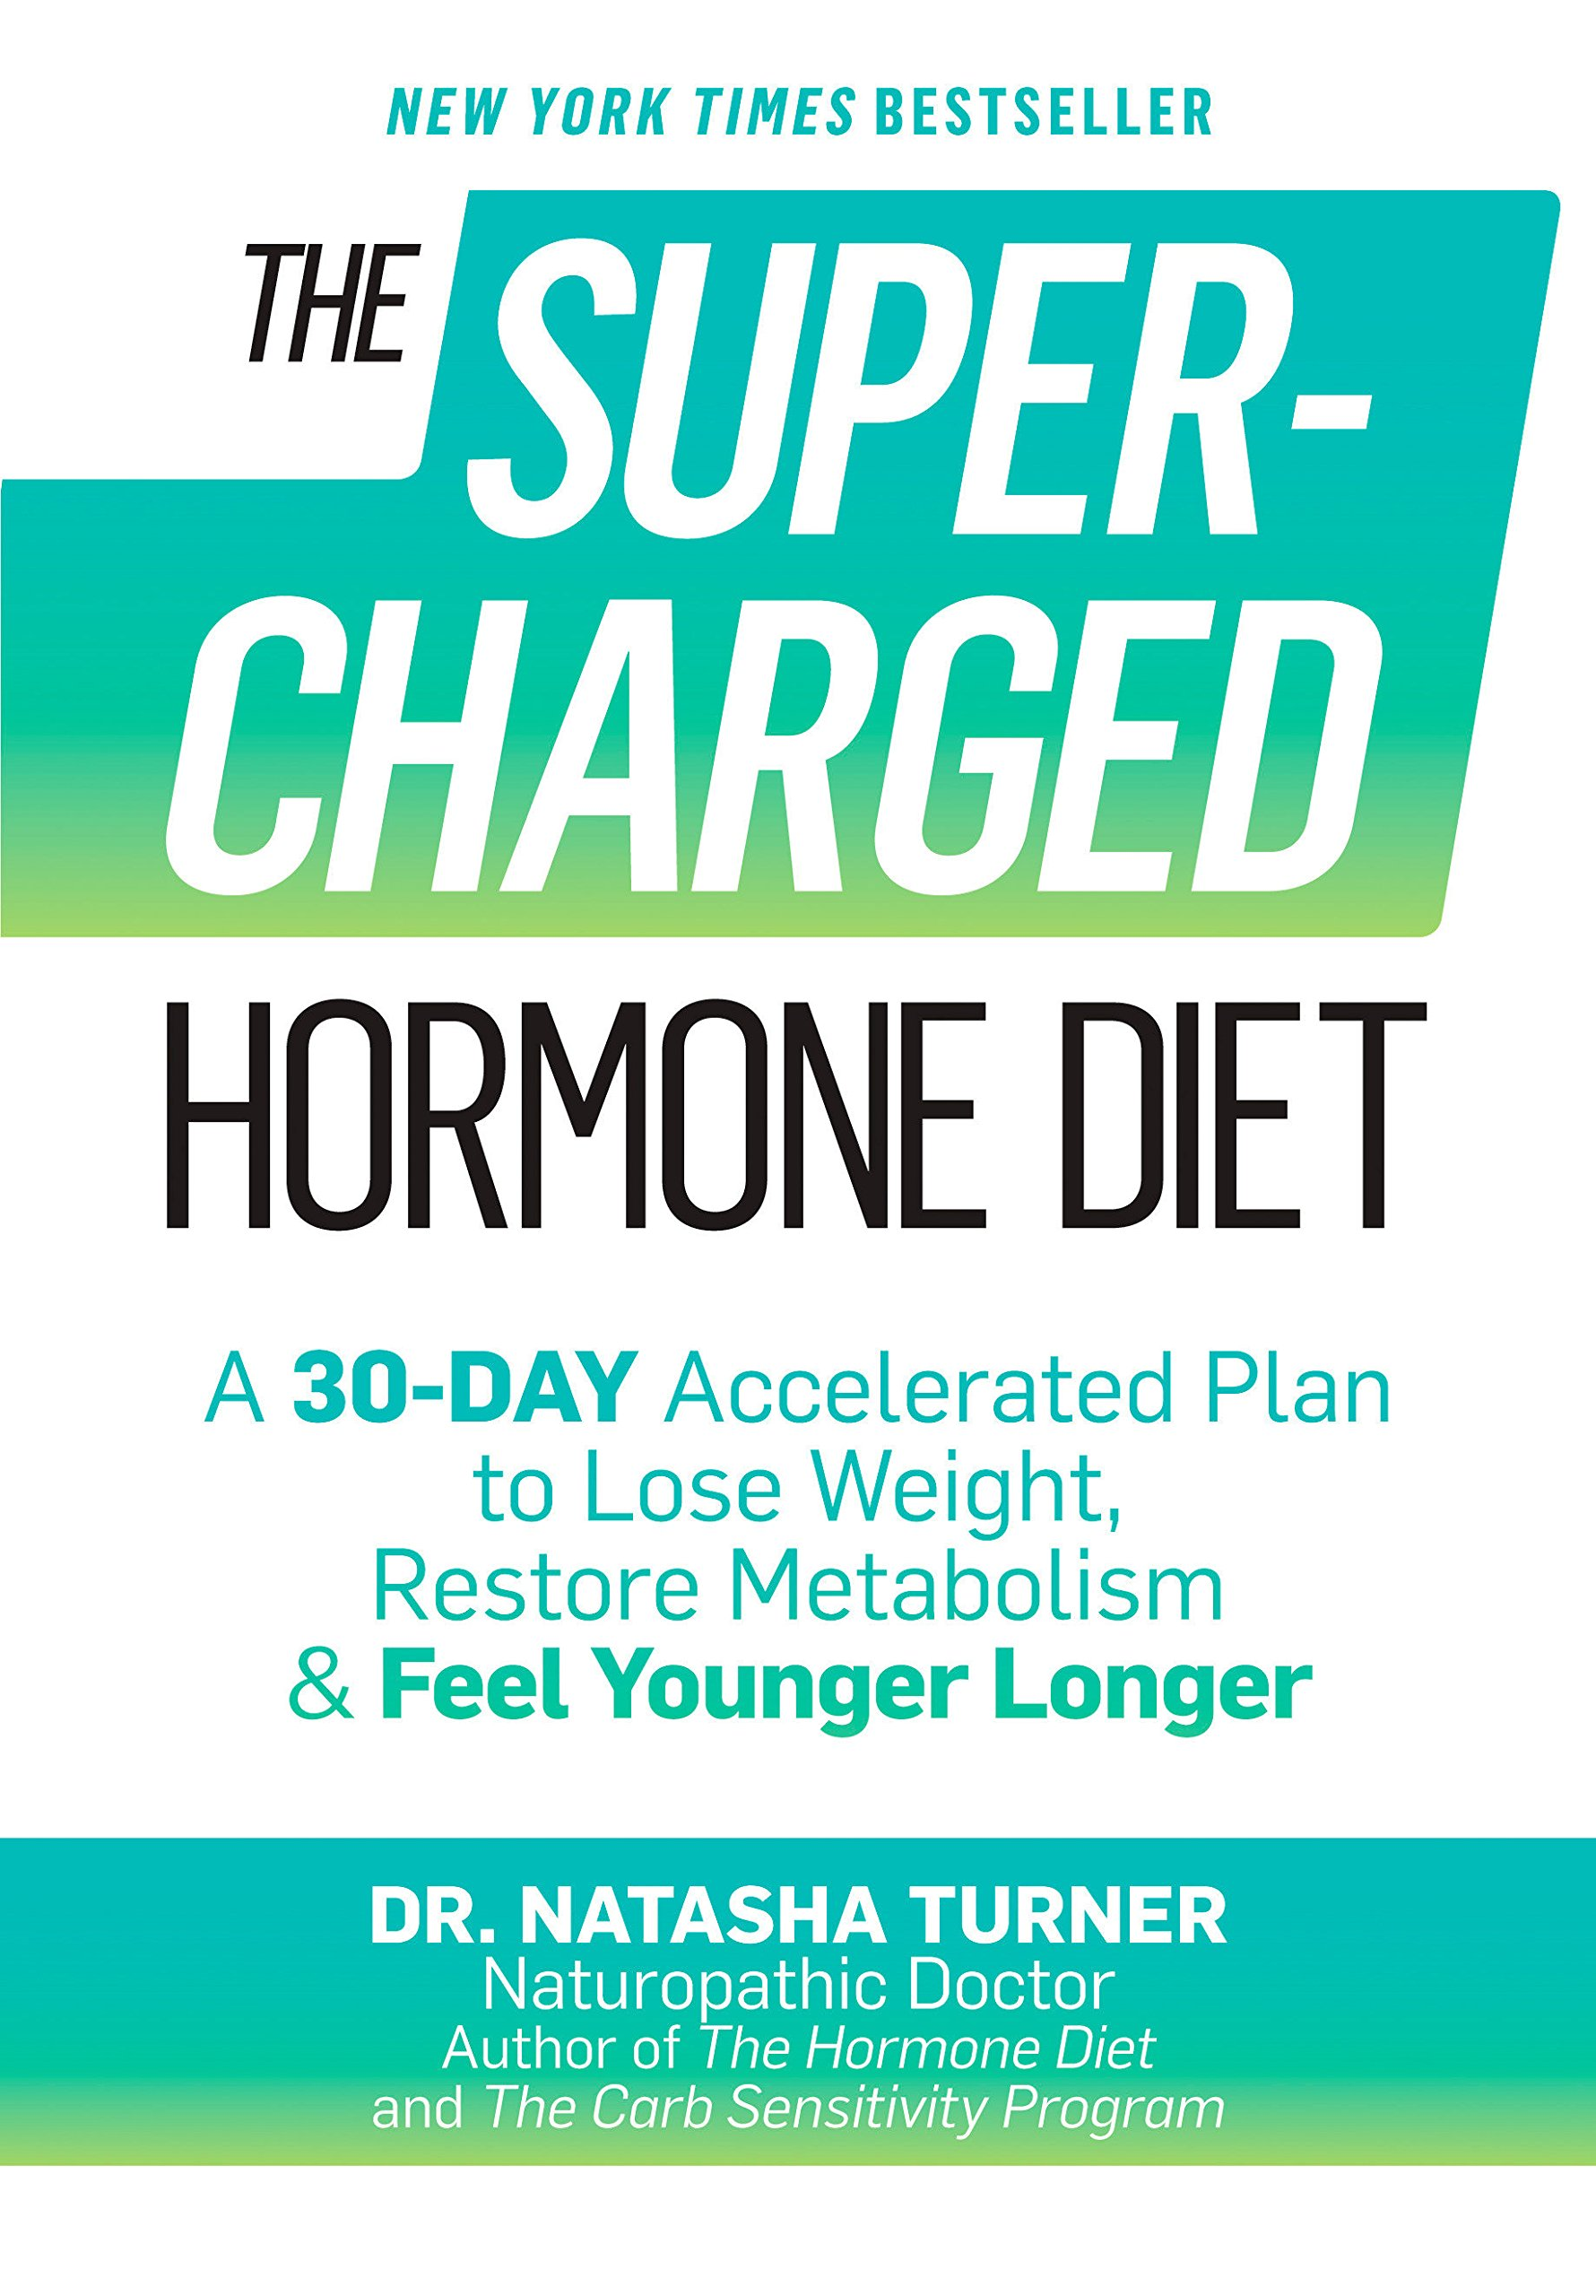 Amazon fr - The Supercharged Hormone Diet: A 30-Day